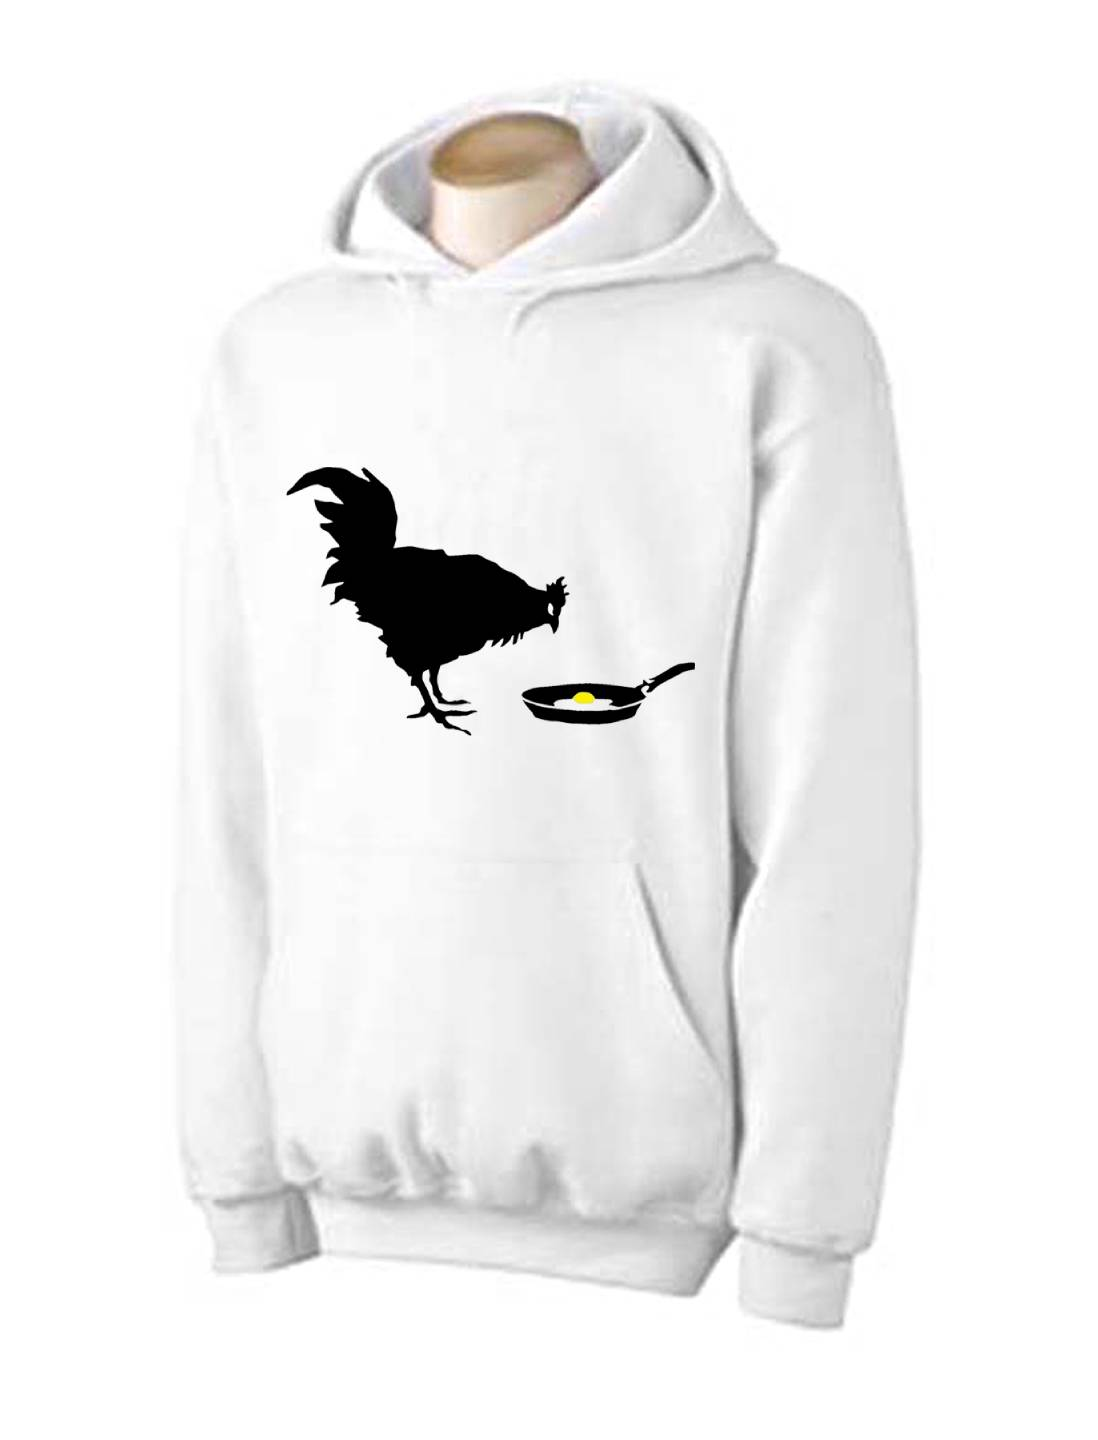 BANKSY-CHICKEN-EGG-HOODIE-Sizes-Small-to-2XL